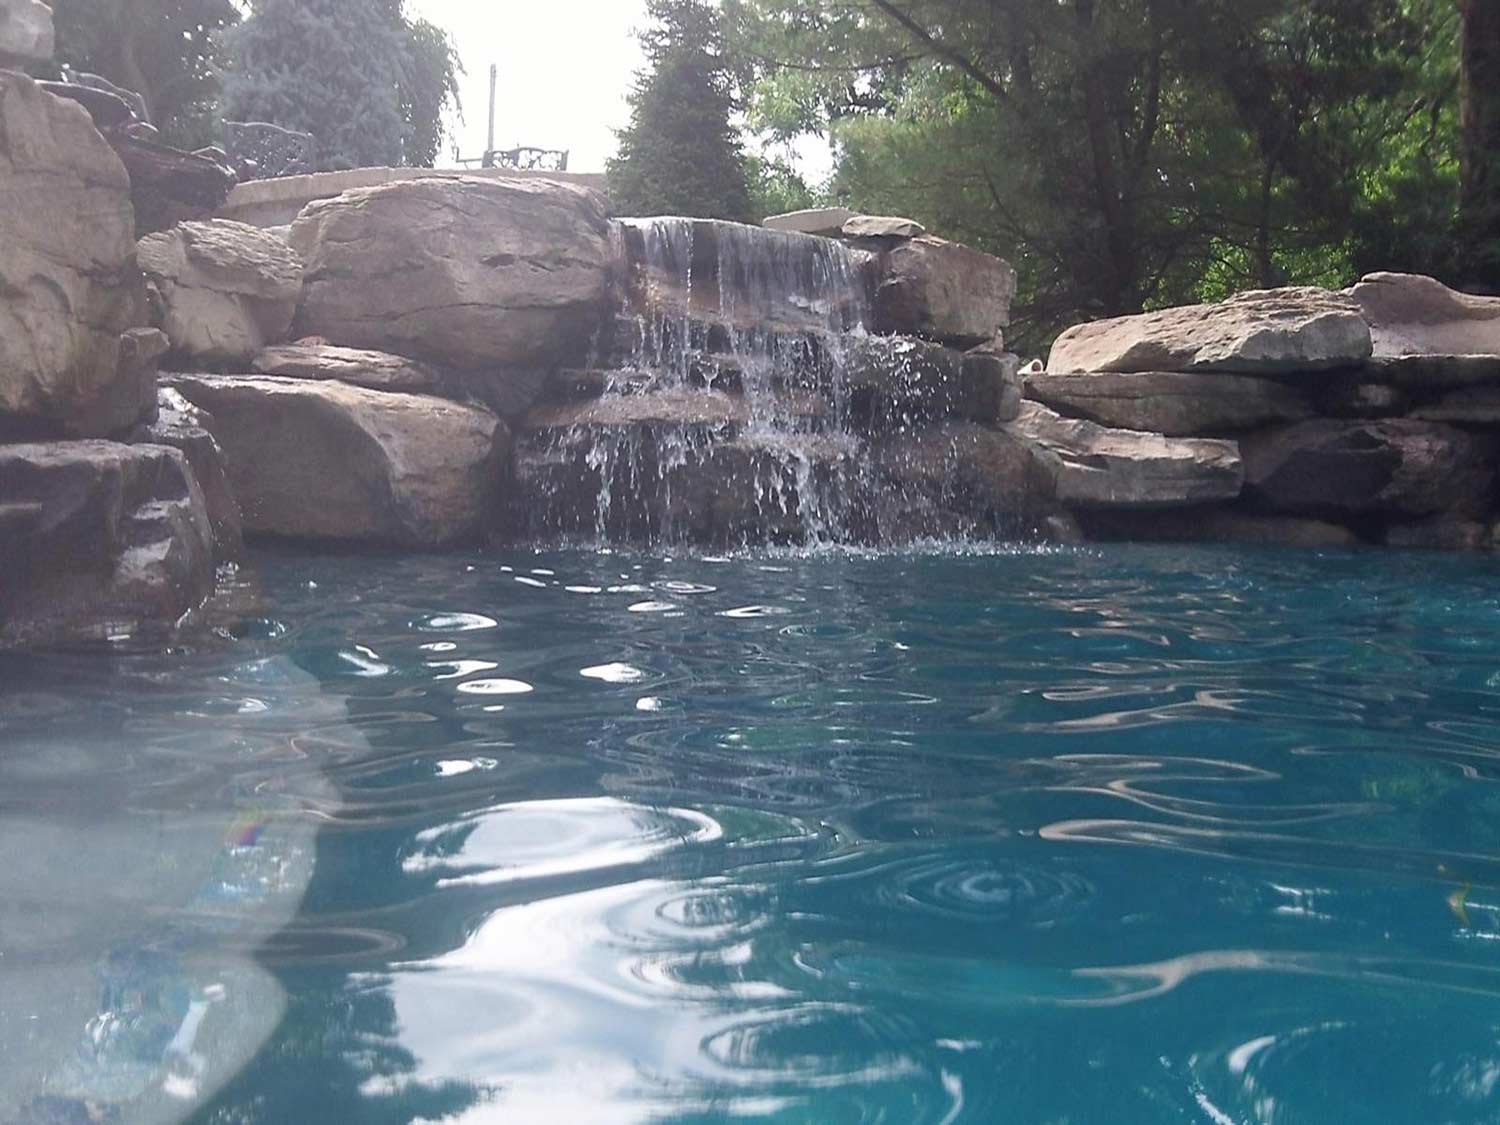 ... Landscaping Or To Give Your Swimming Pool That Extra Splash. Our Custom  Waterfalls Will Take Your Residential Or Commercial Property To The Next  Level.